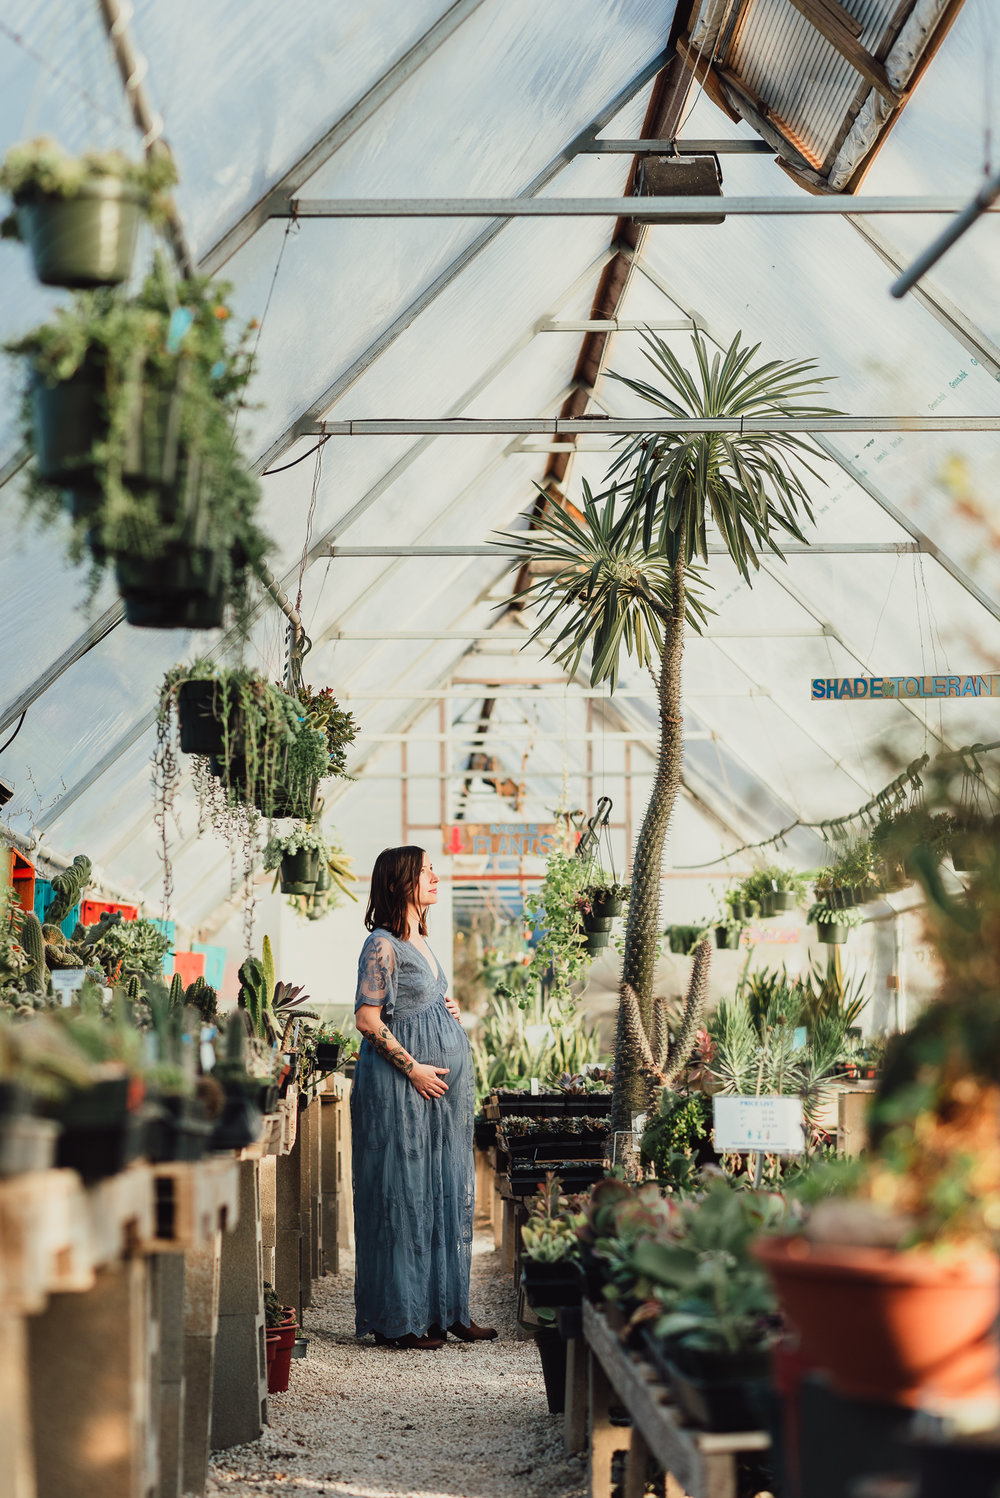 Austin Texas Lifestyle Maternity Photographer Photography Family Newborn Baby Blue Lace Dress Greenhouse